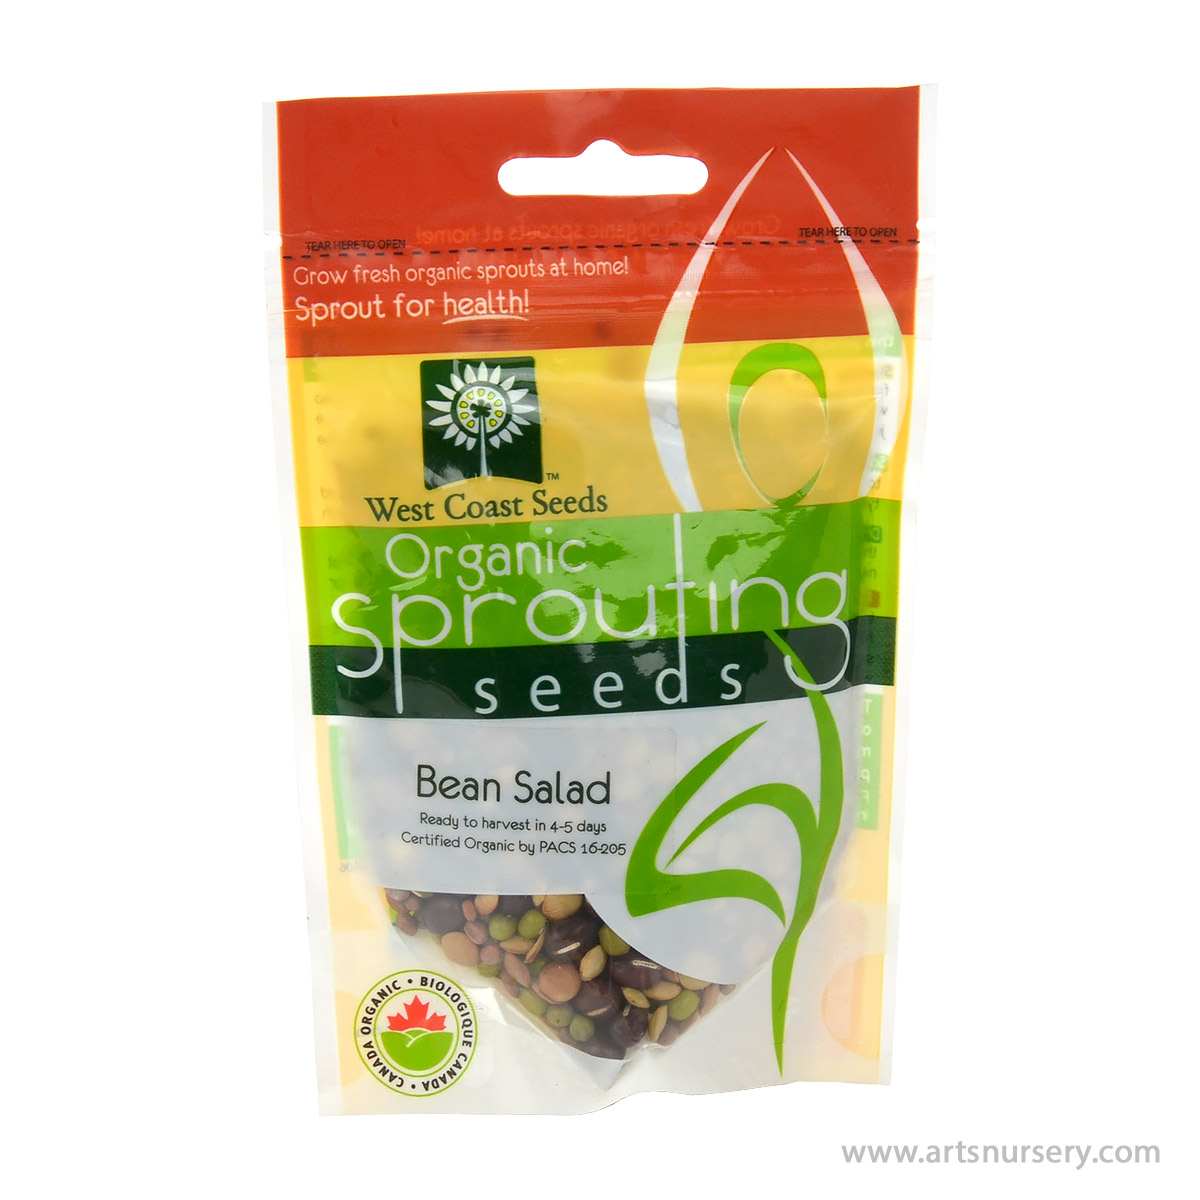 Bean Salad Organic Sprouting Seeds